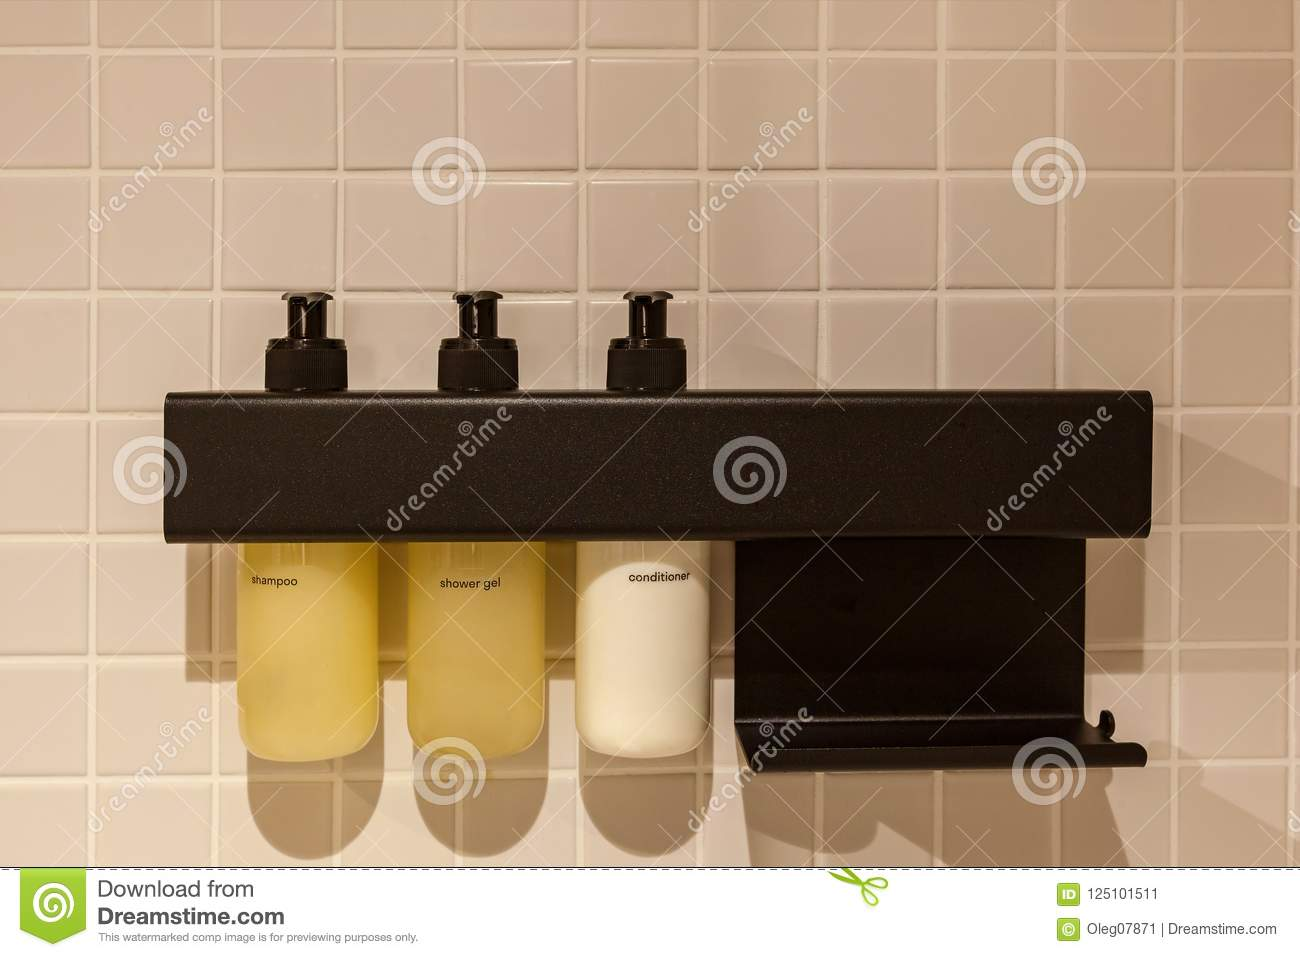 Interior And Objects In The Bathroom Stock Image - Image of